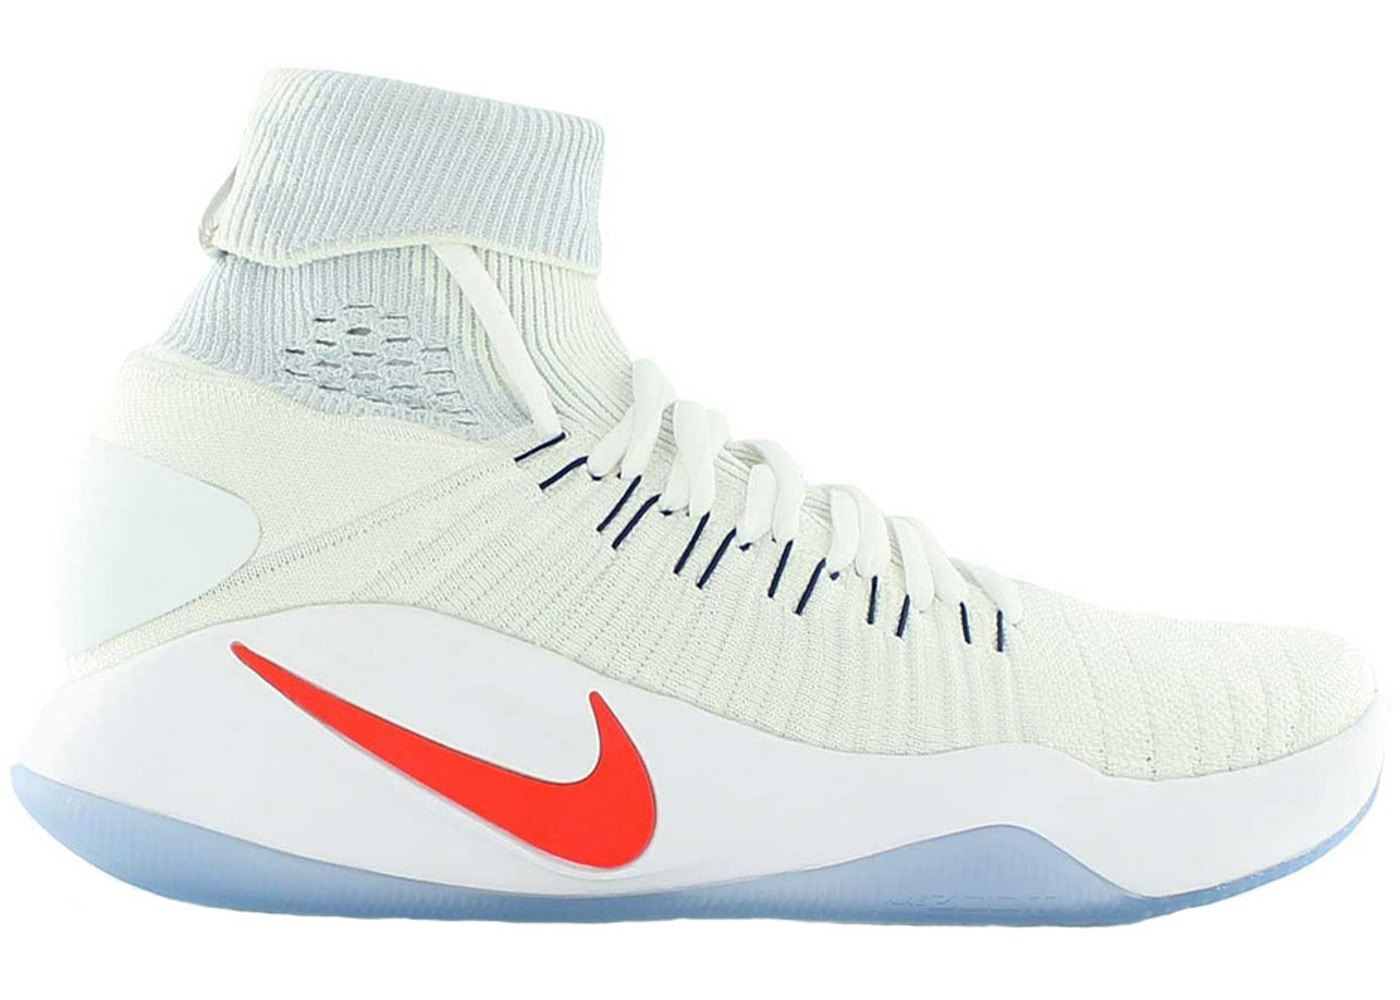 premium selection 84346 dbf96 Nike Basketball Hyperdunk Shoes - Average Sale Price